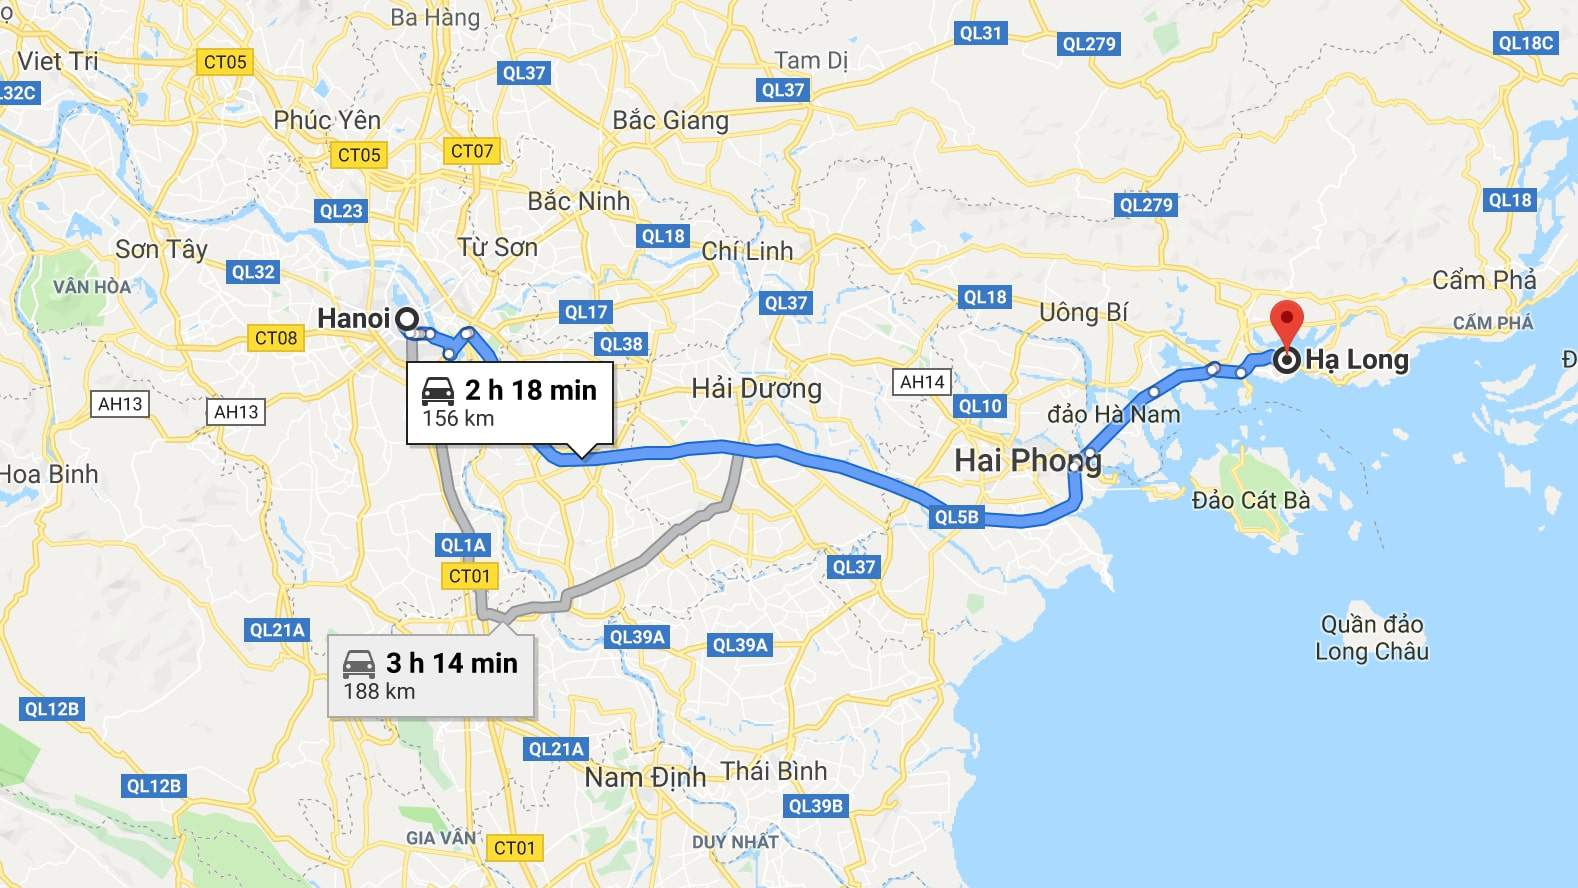 Distance from Hanoi to Halong bay